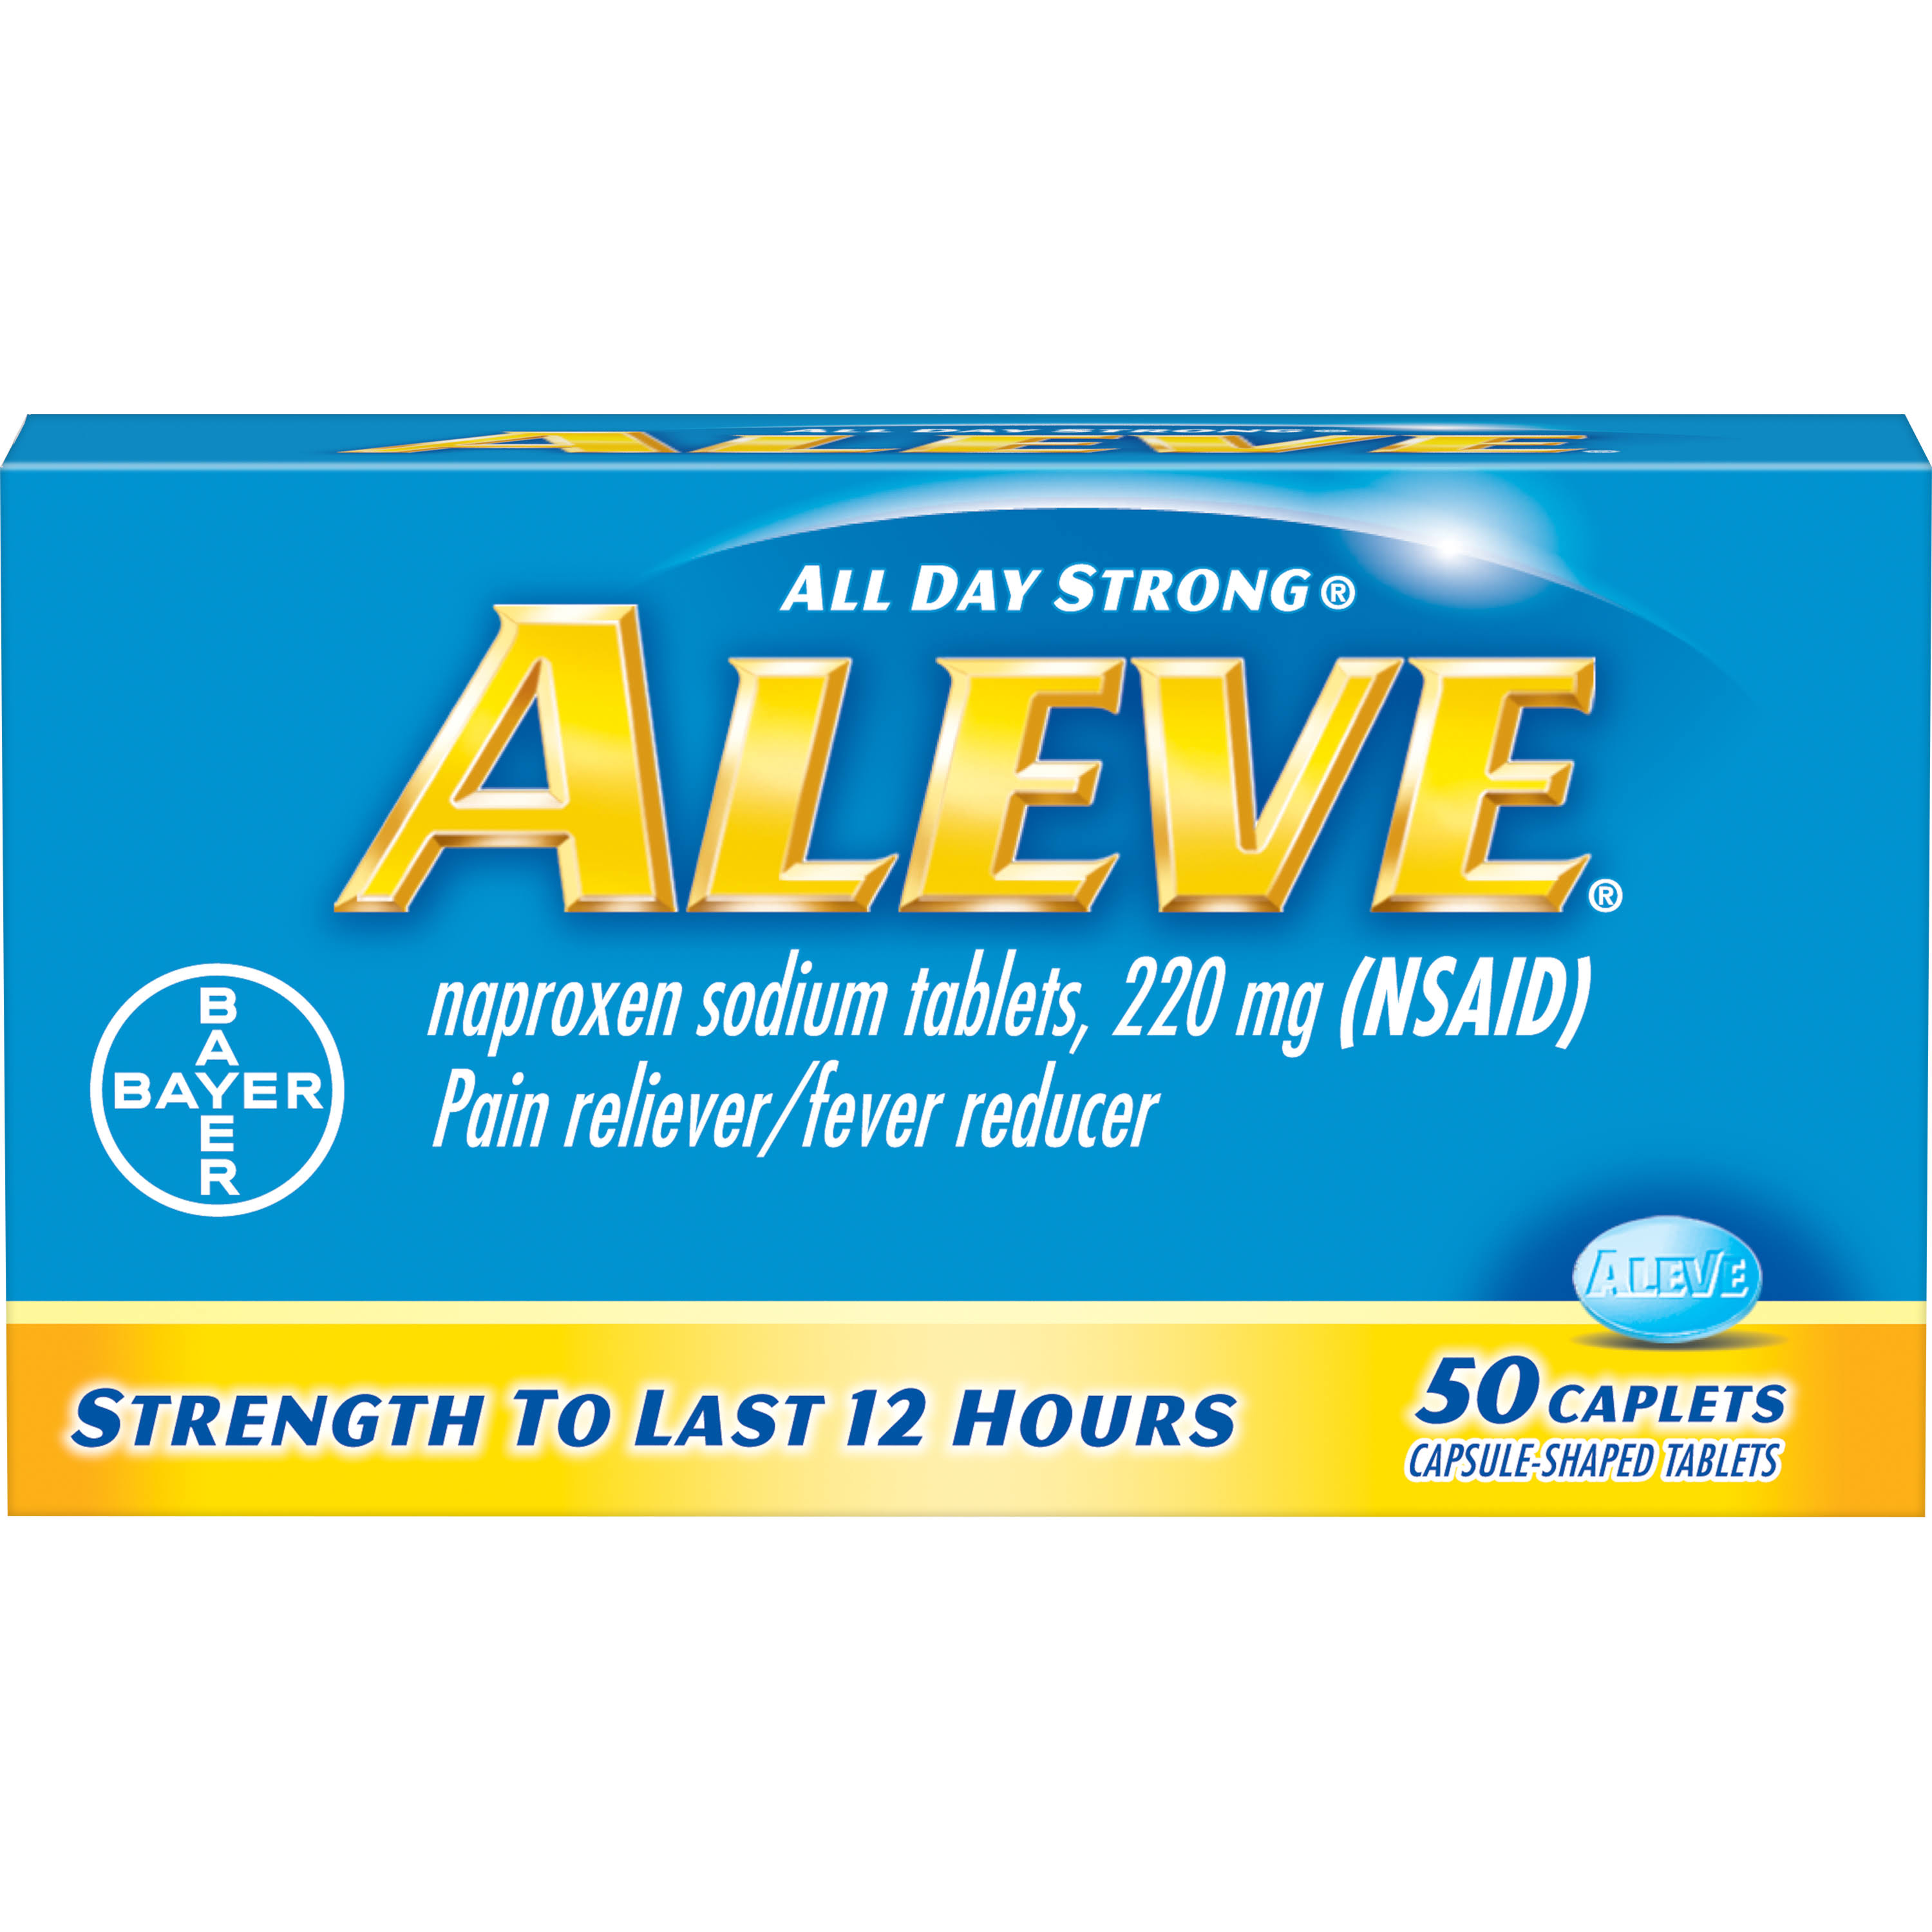 Aleve Pain Reliever/Fever Reducer - 50 caplets, 220mg